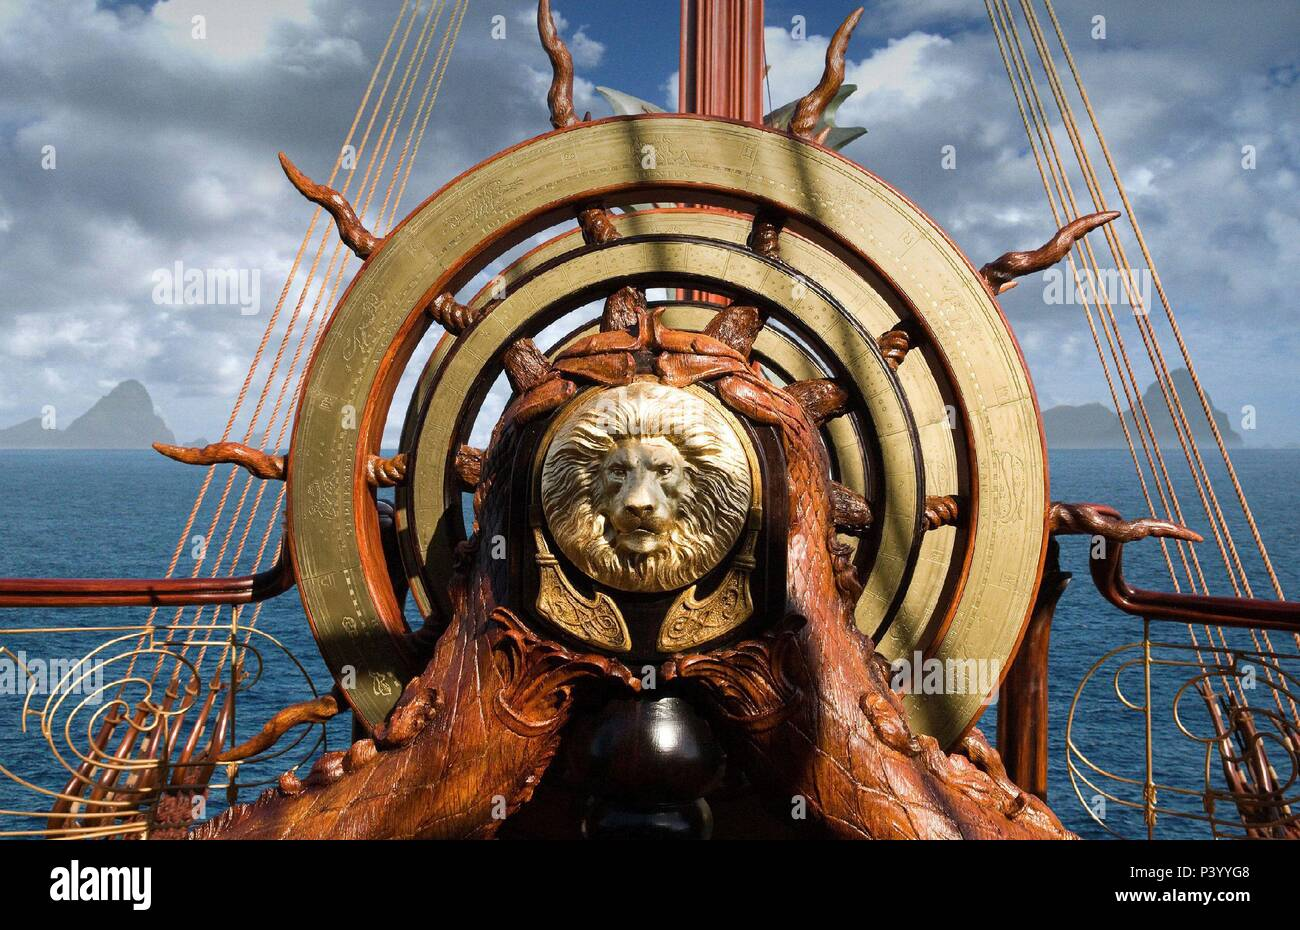 Original Film Title: CHRONICLES OF NARNIA, THE: THE VOYAGE OF THE DAWN TREADER.  English Title: CHRONICLES OF NARNIA, THE: THE VOYAGE OF THE DAWN TREADER.  Film Director: MICHAEL APTED.  Year: 2010. Credit: 20TH CENTURY FOX / Album - Stock Image